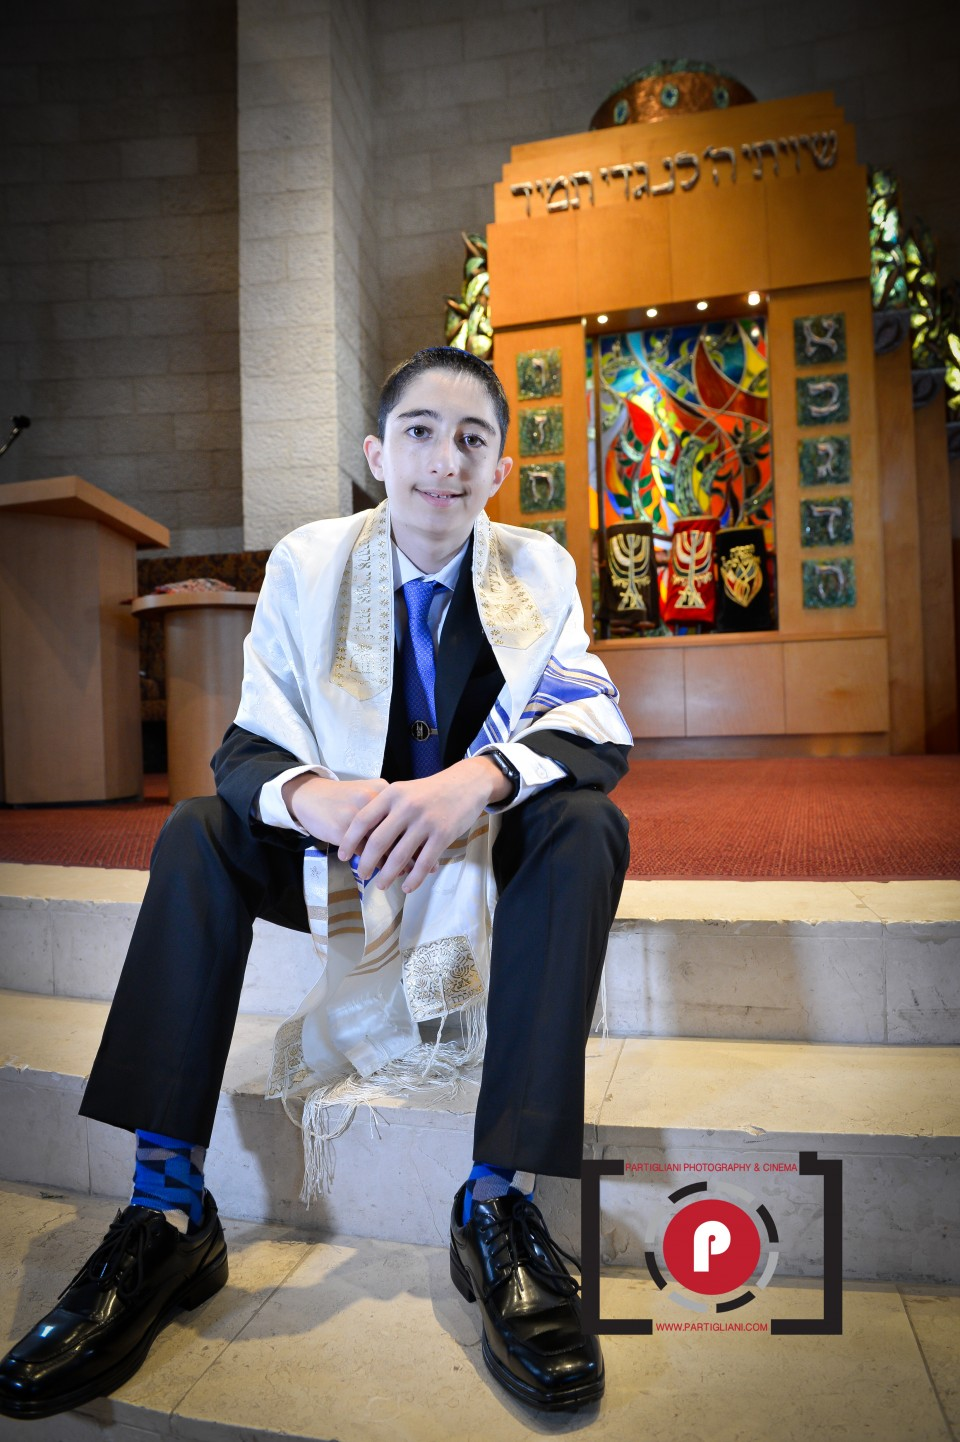 TEMPLE BETH EMET, PARTIGLIANI PHOTOGRAPHY, JEREMY'S BAR MITZVAH-3